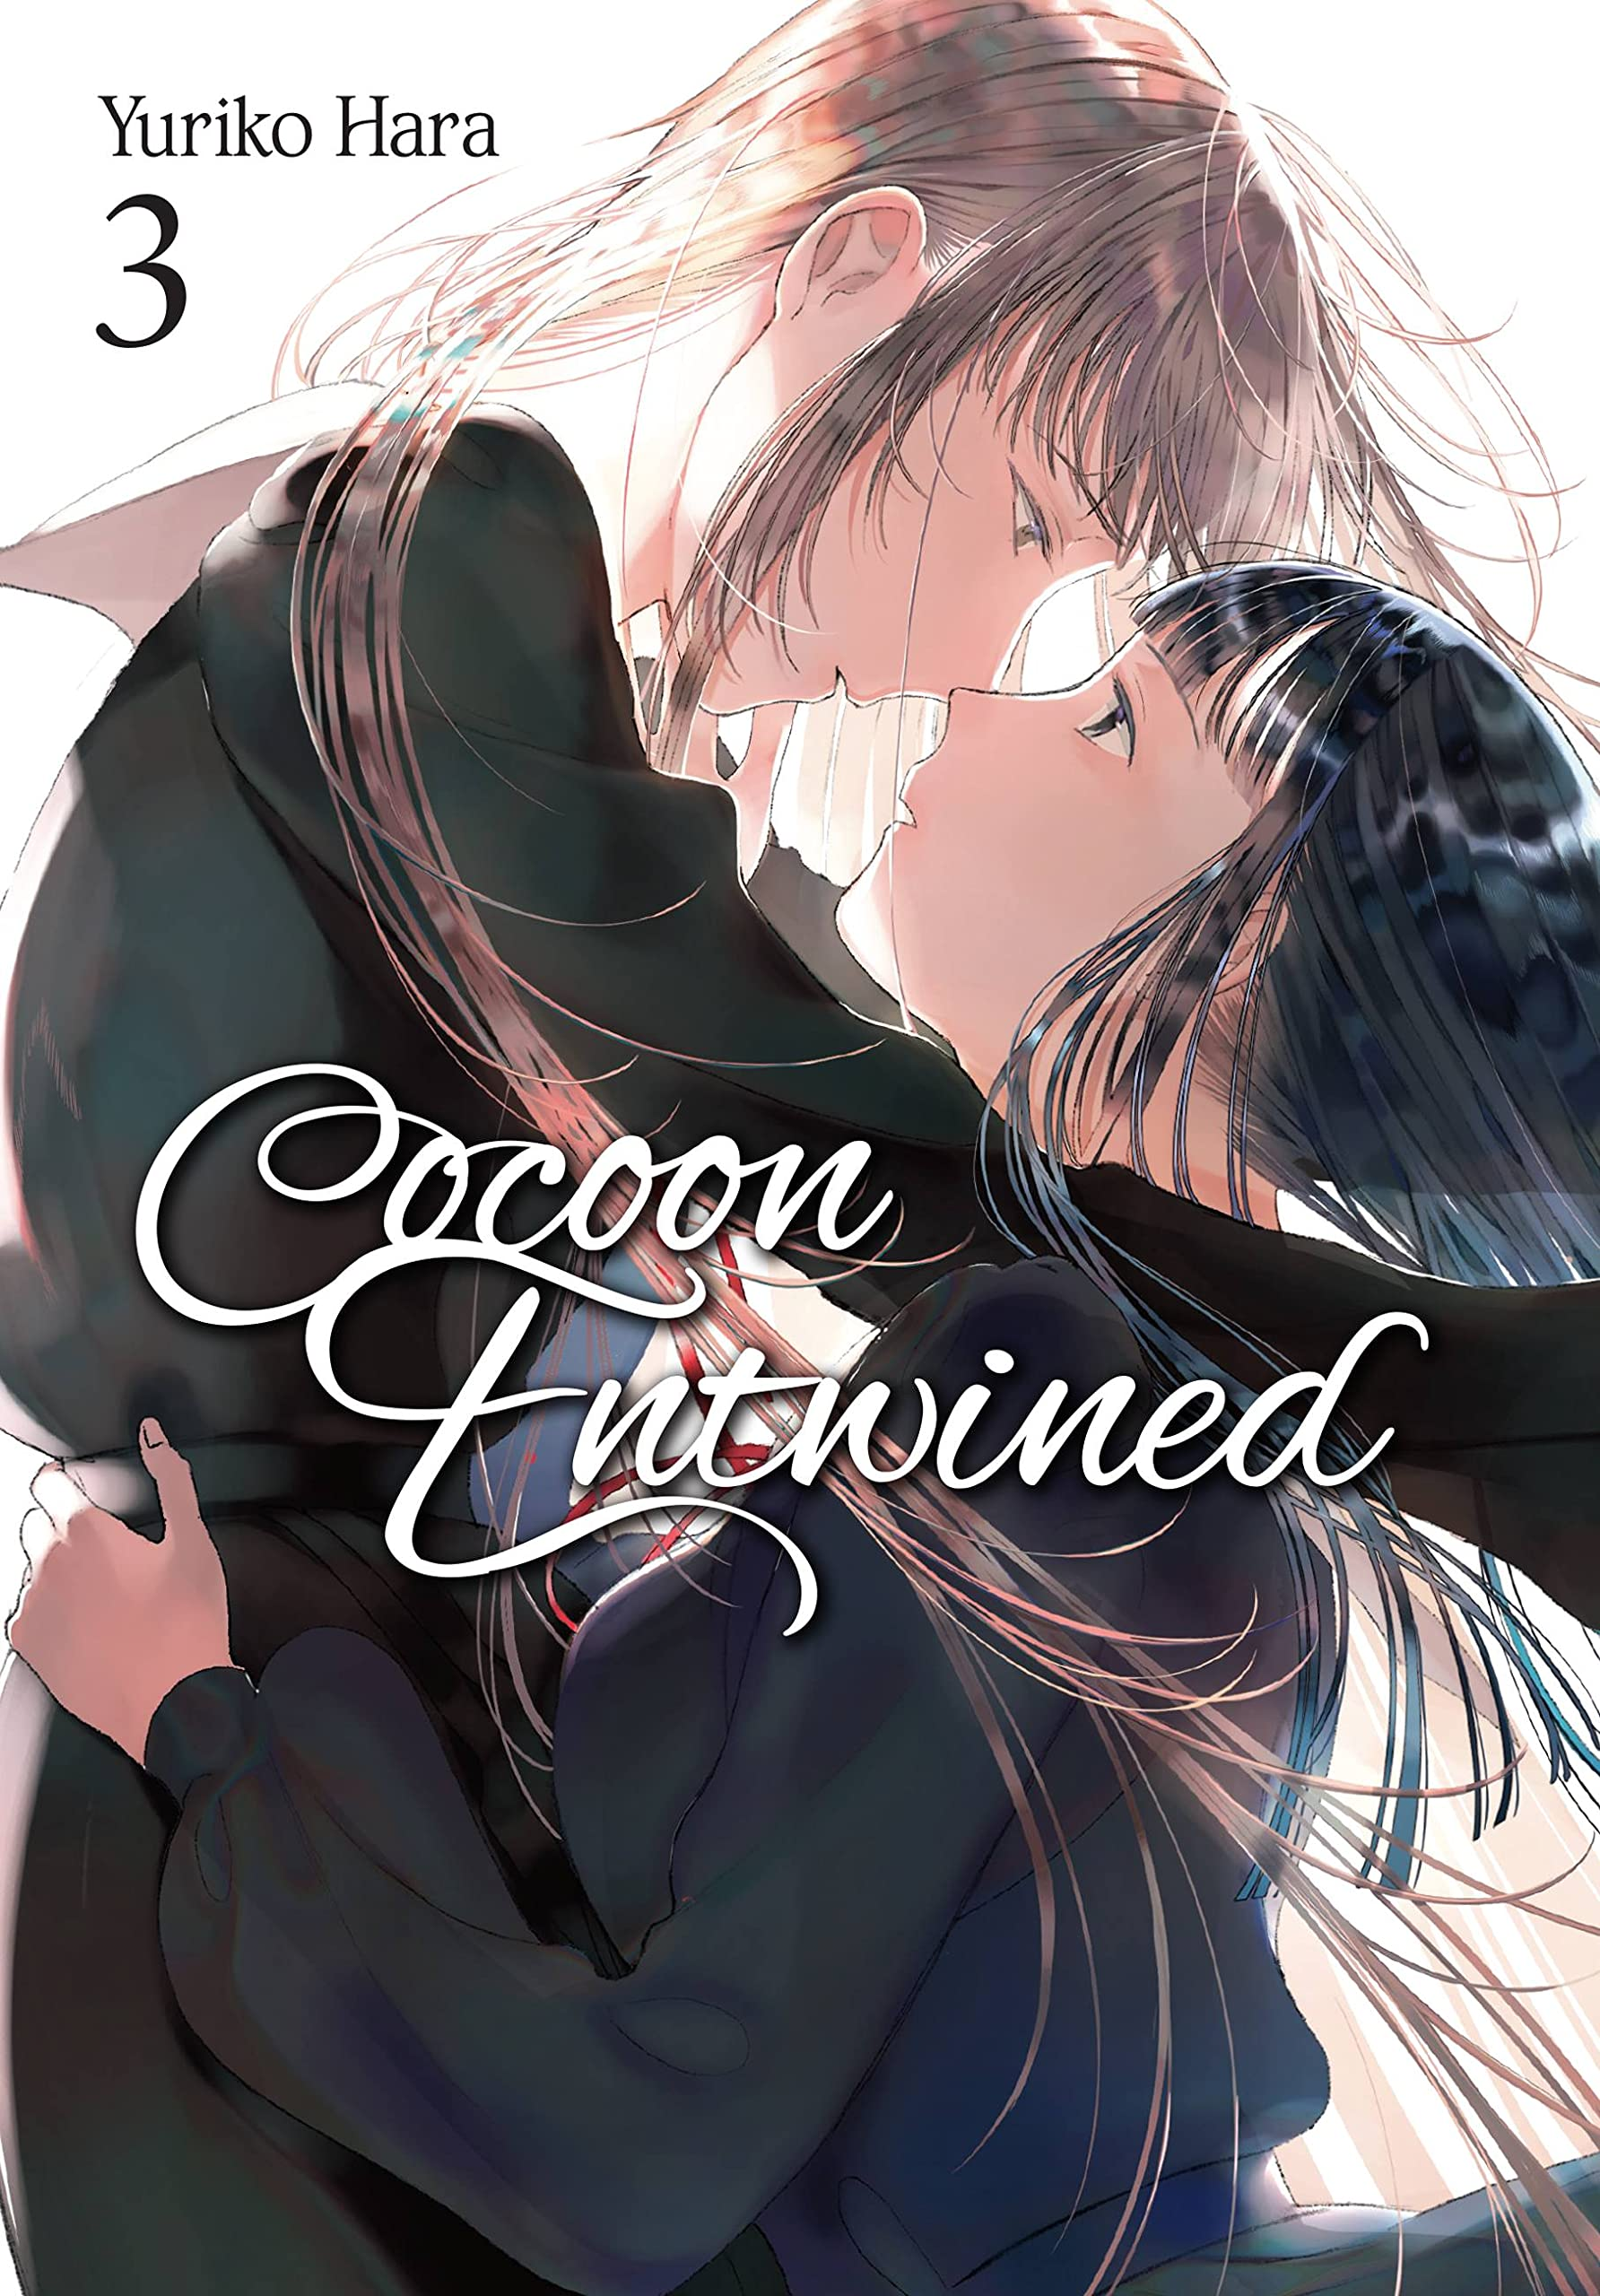 Featured image for Thoughts on Cocoon Entwined Volume 3